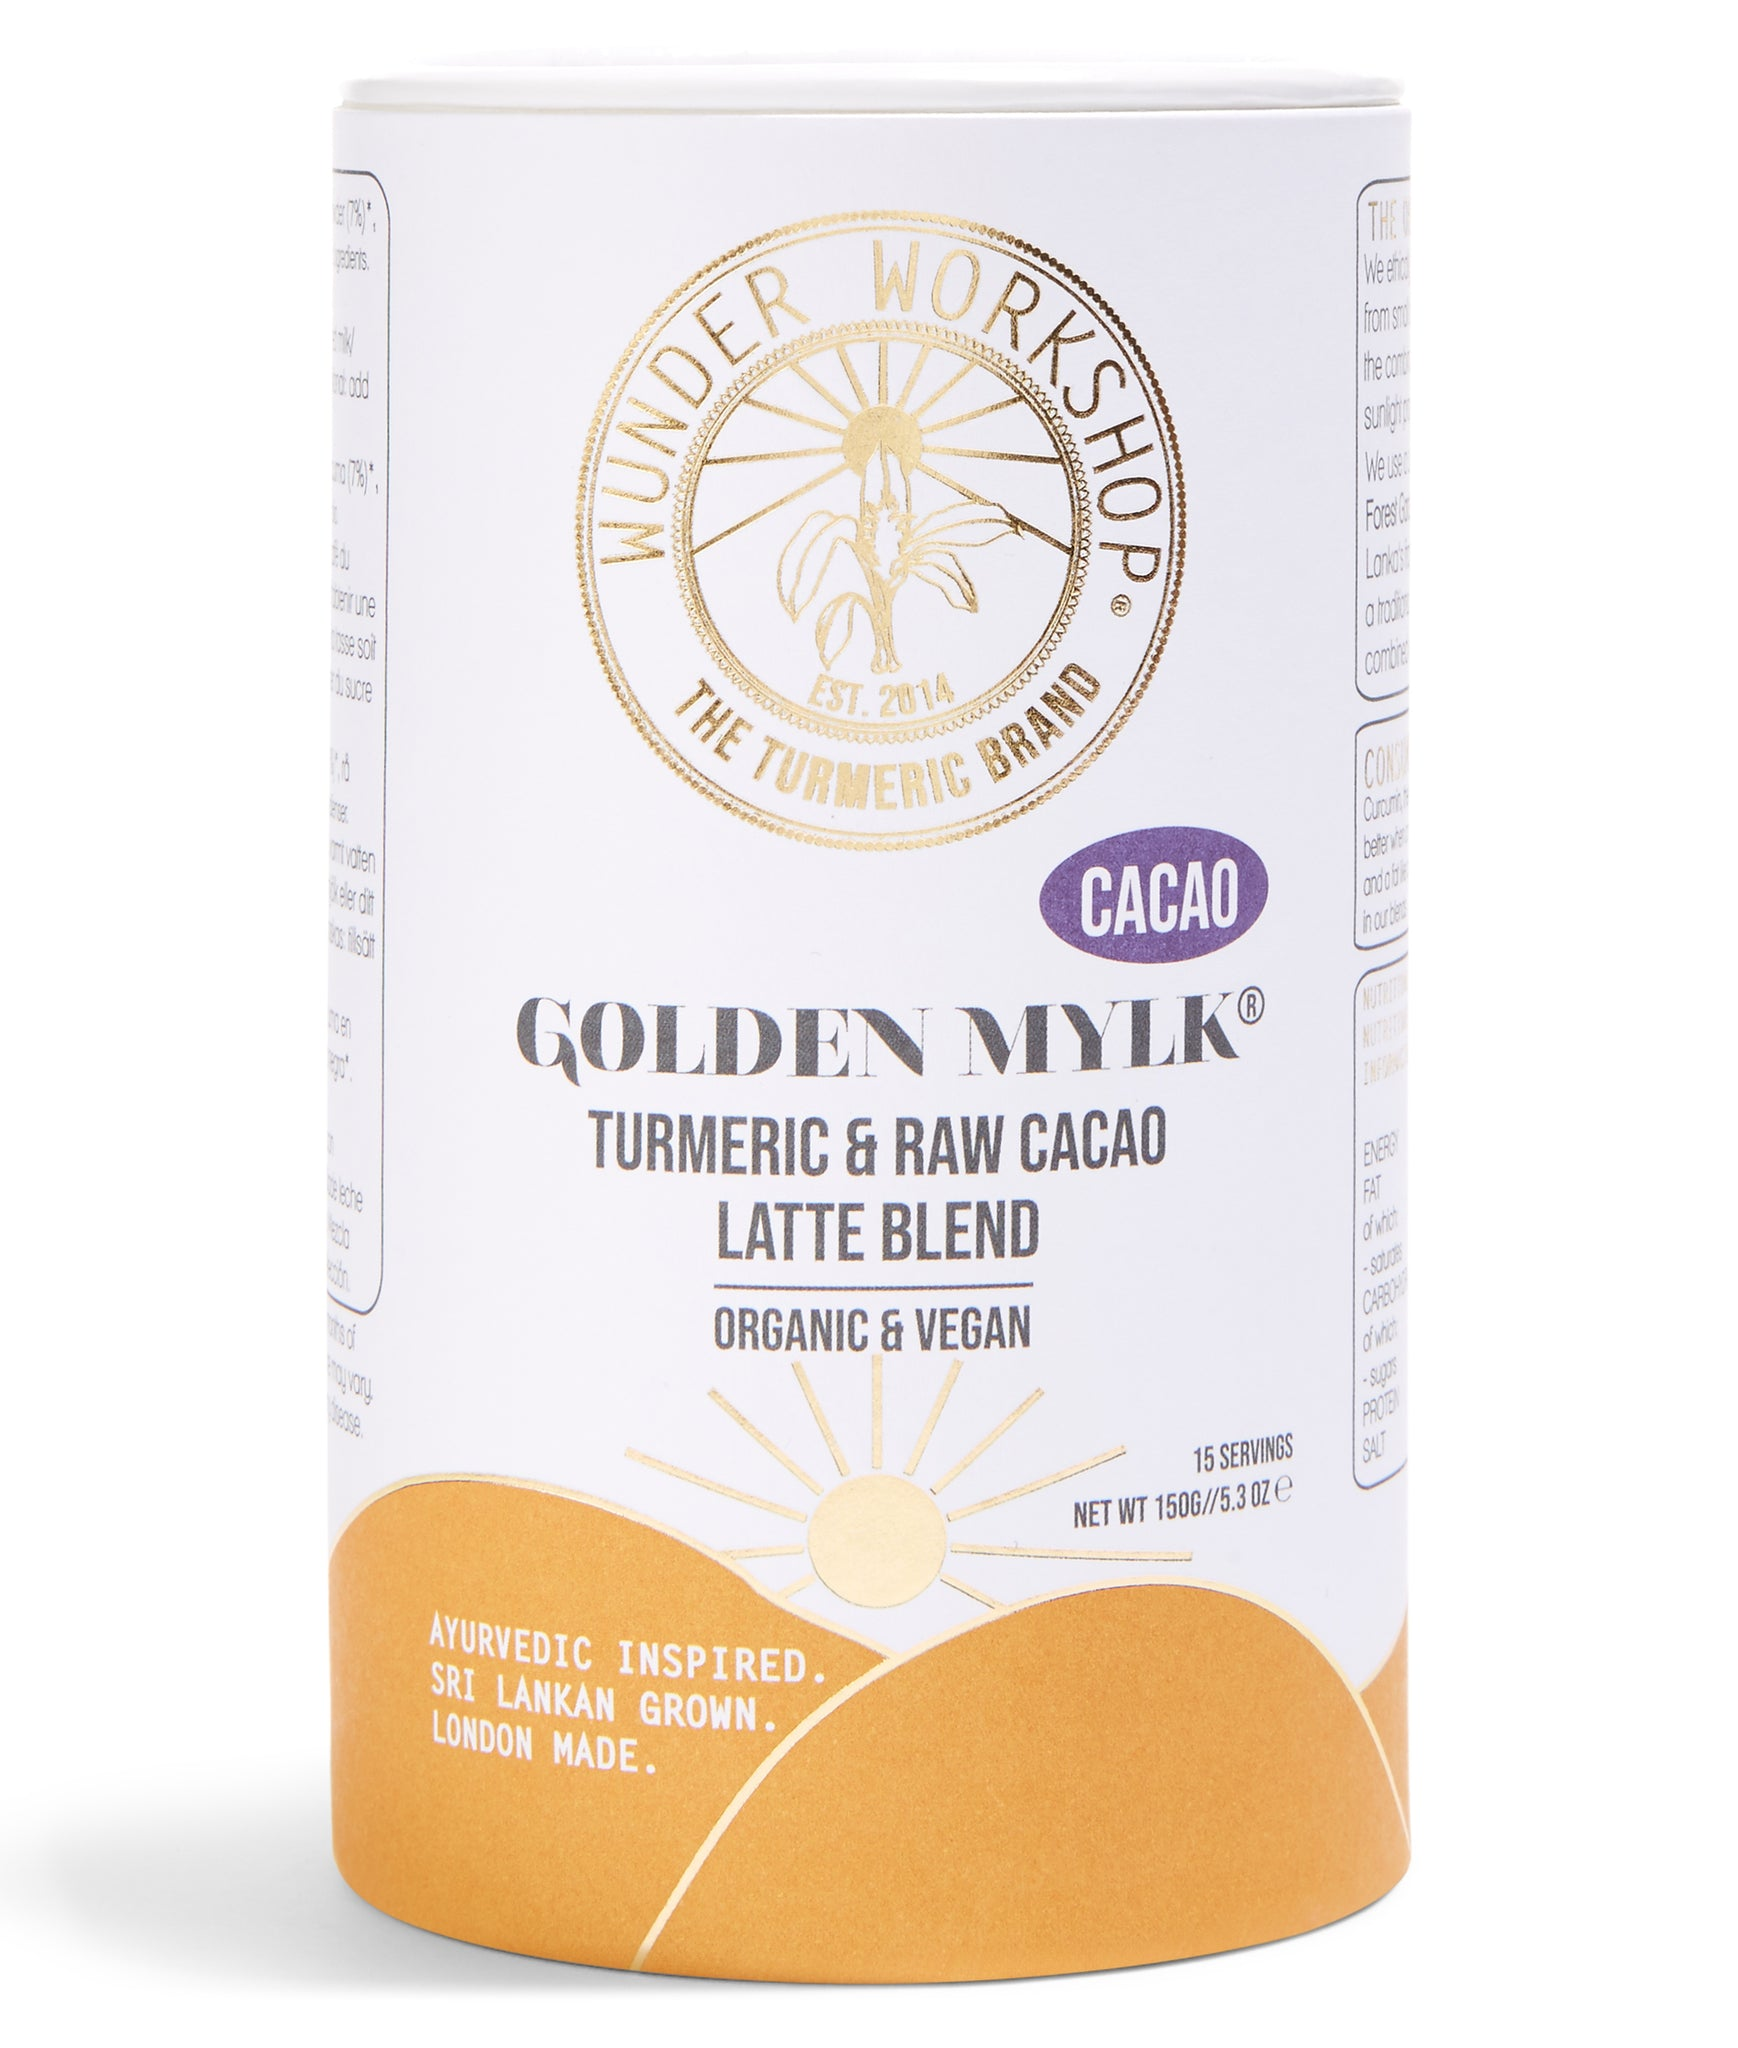 Wunder Workshop Golden Mylk Turmeric Cacao Latte - 150g